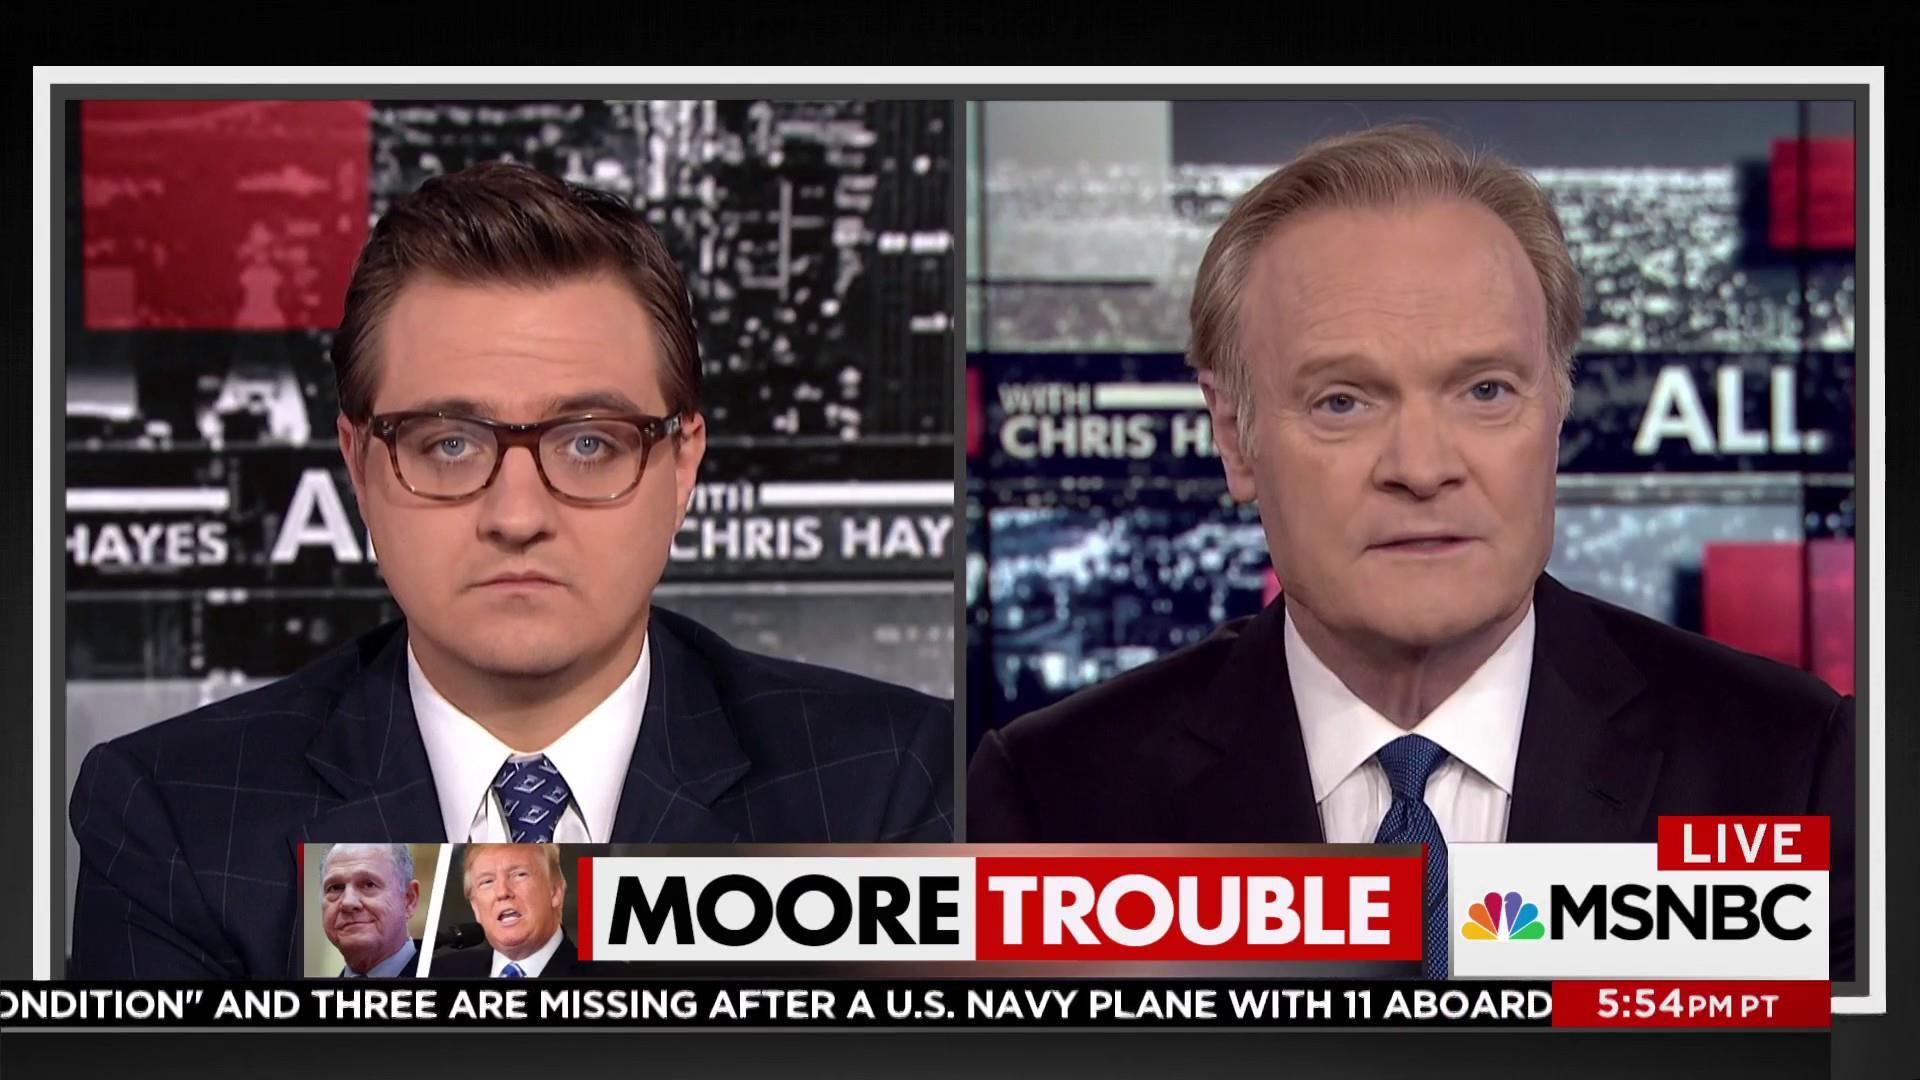 Despite accusations Moore could win...